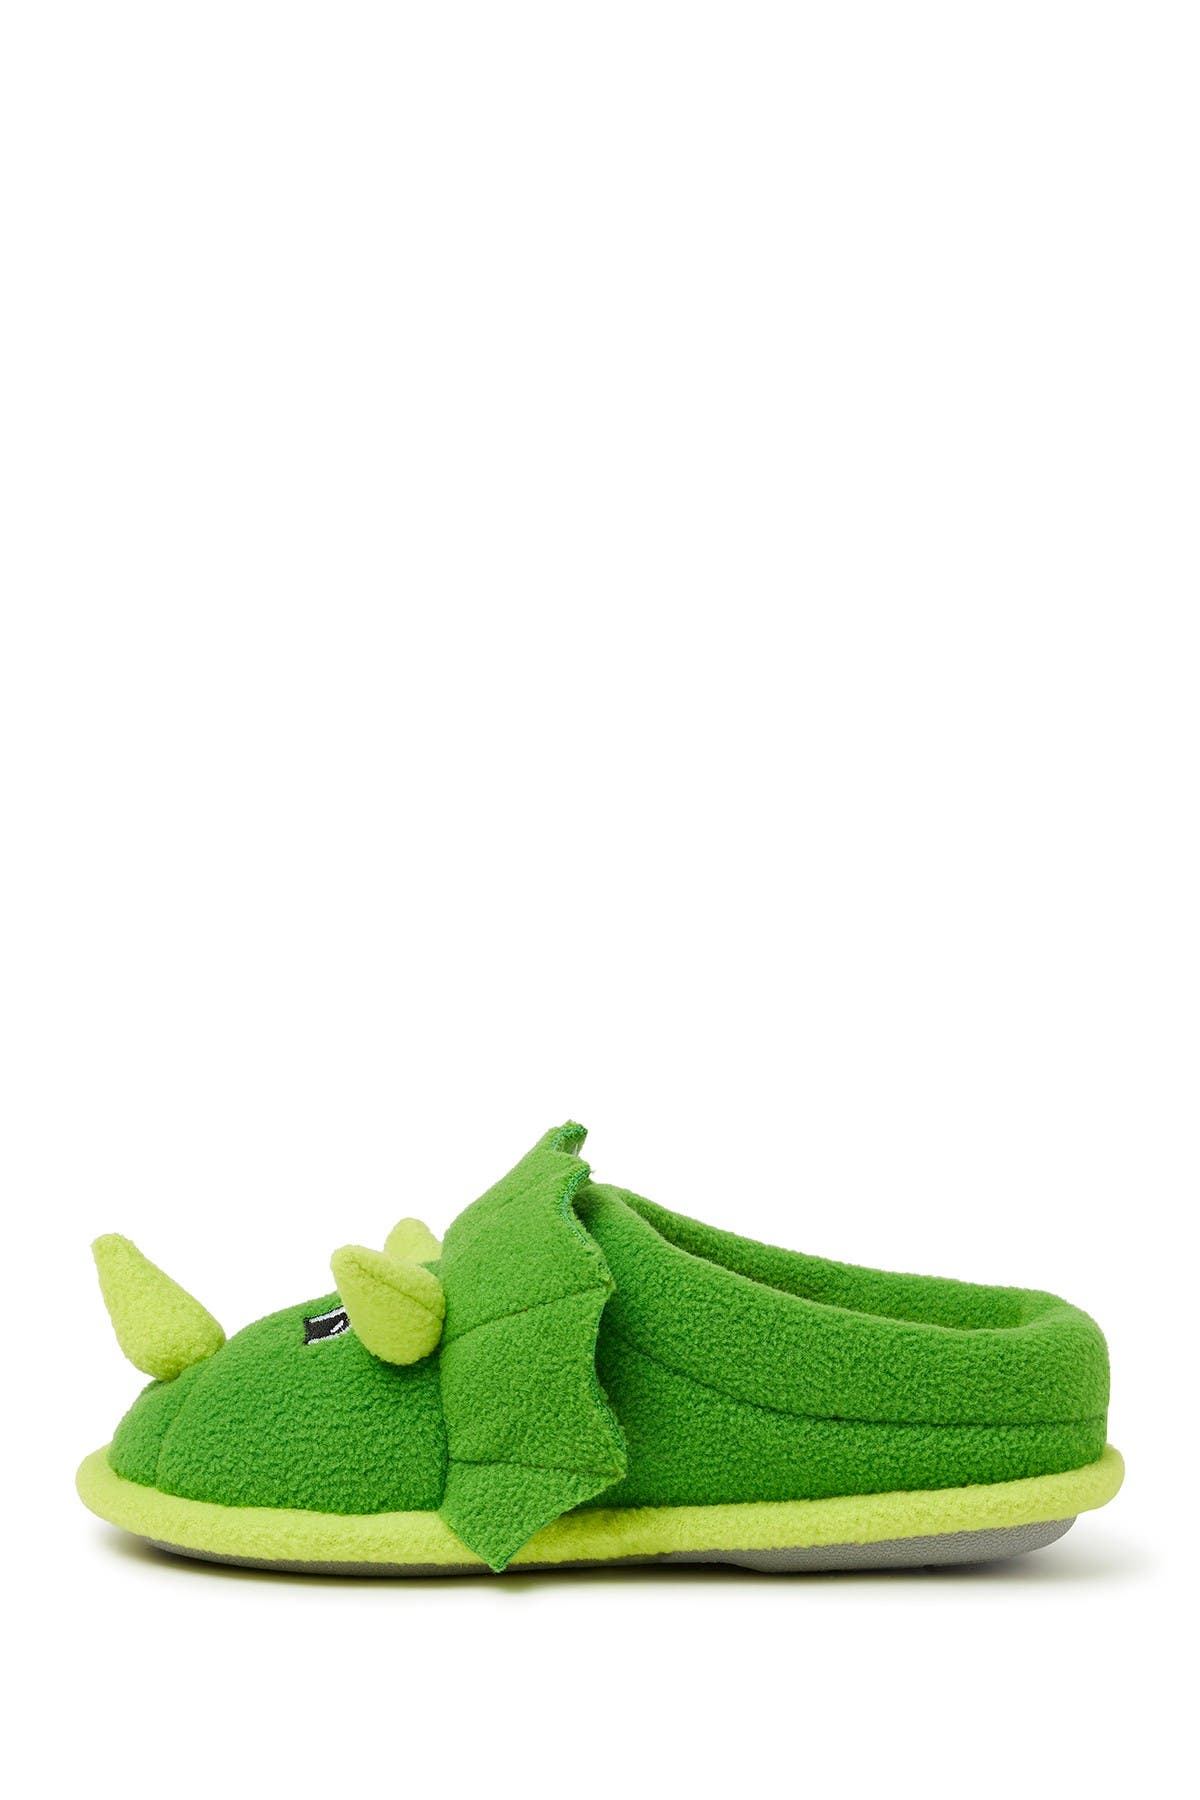 Image of Dearfoams Peyton Animal Shaped Clog Slipper